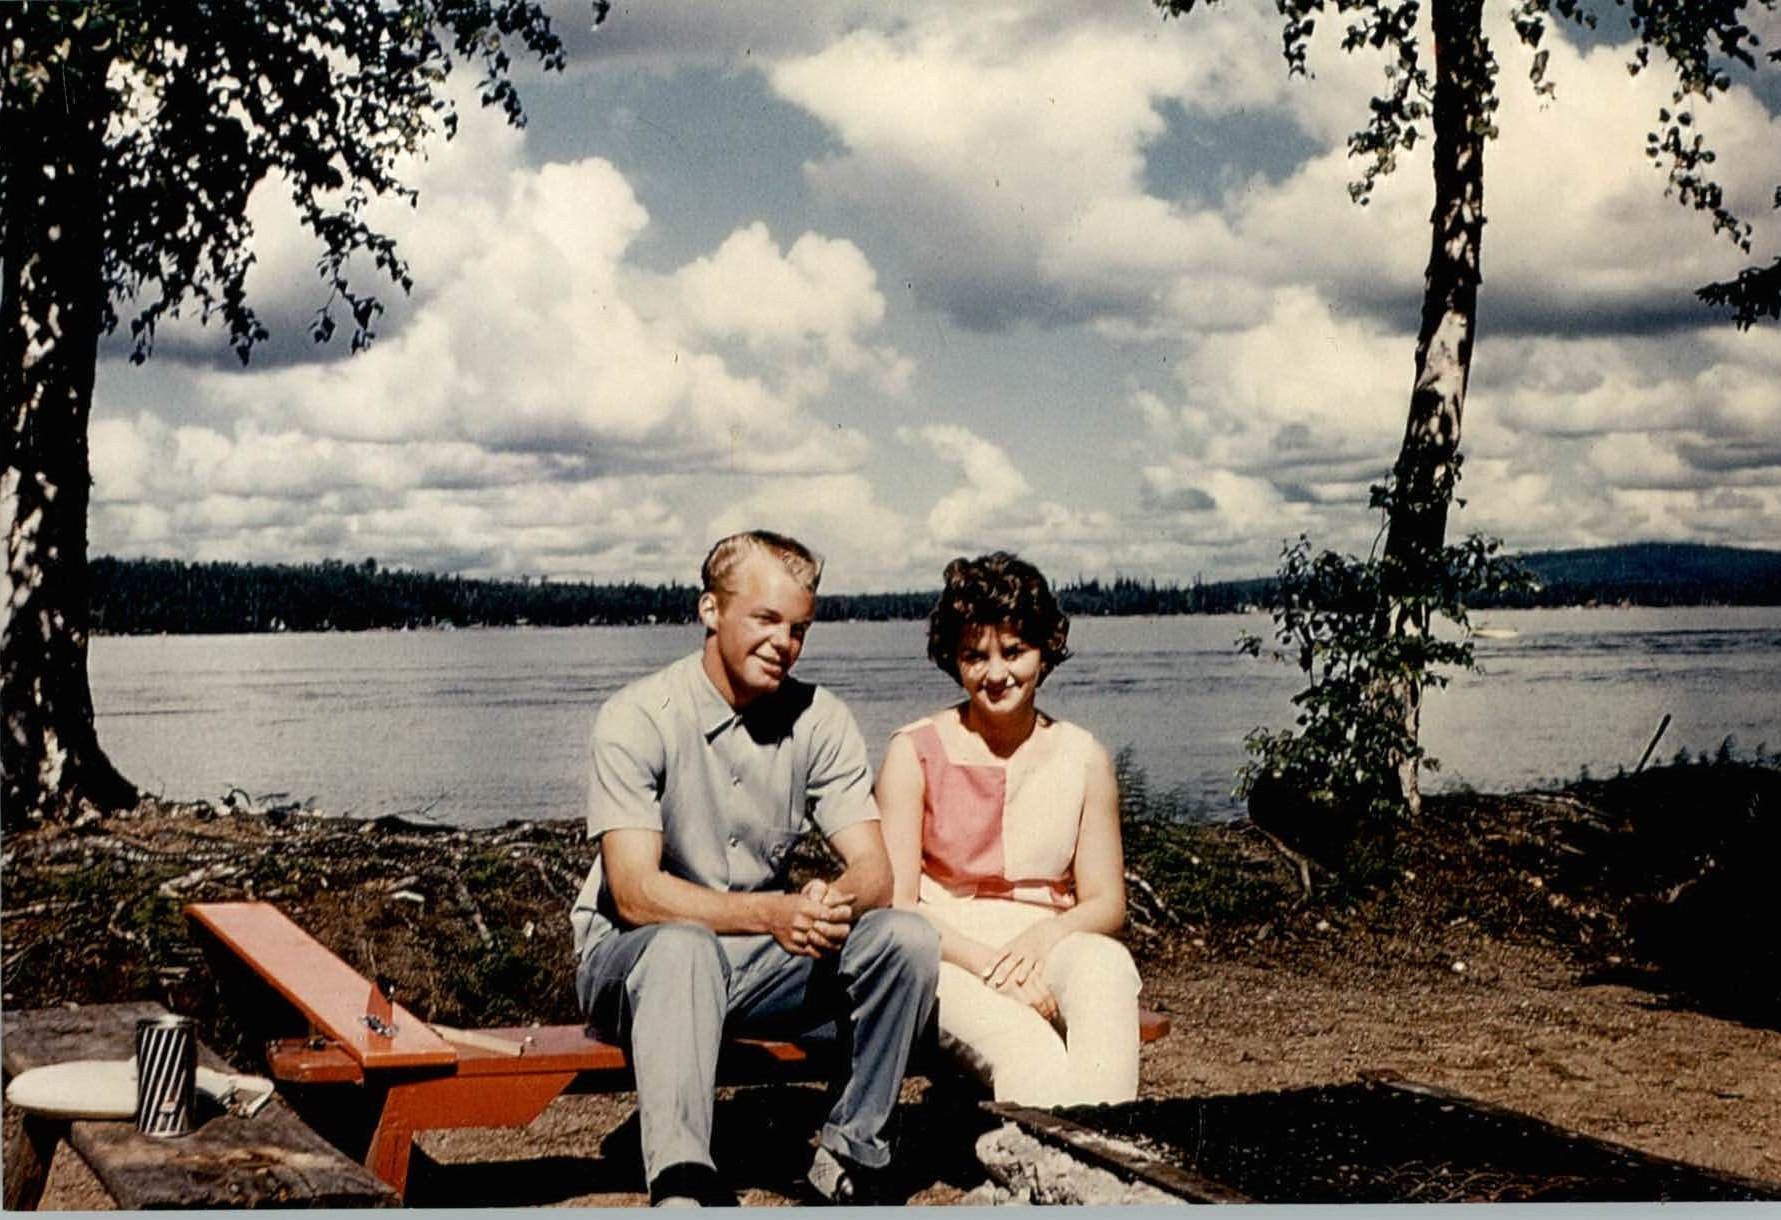 1961 Dave Tilman & Robin Wold Dodson looking west from cove area near the point.  West side or highway side of lake visible in photo